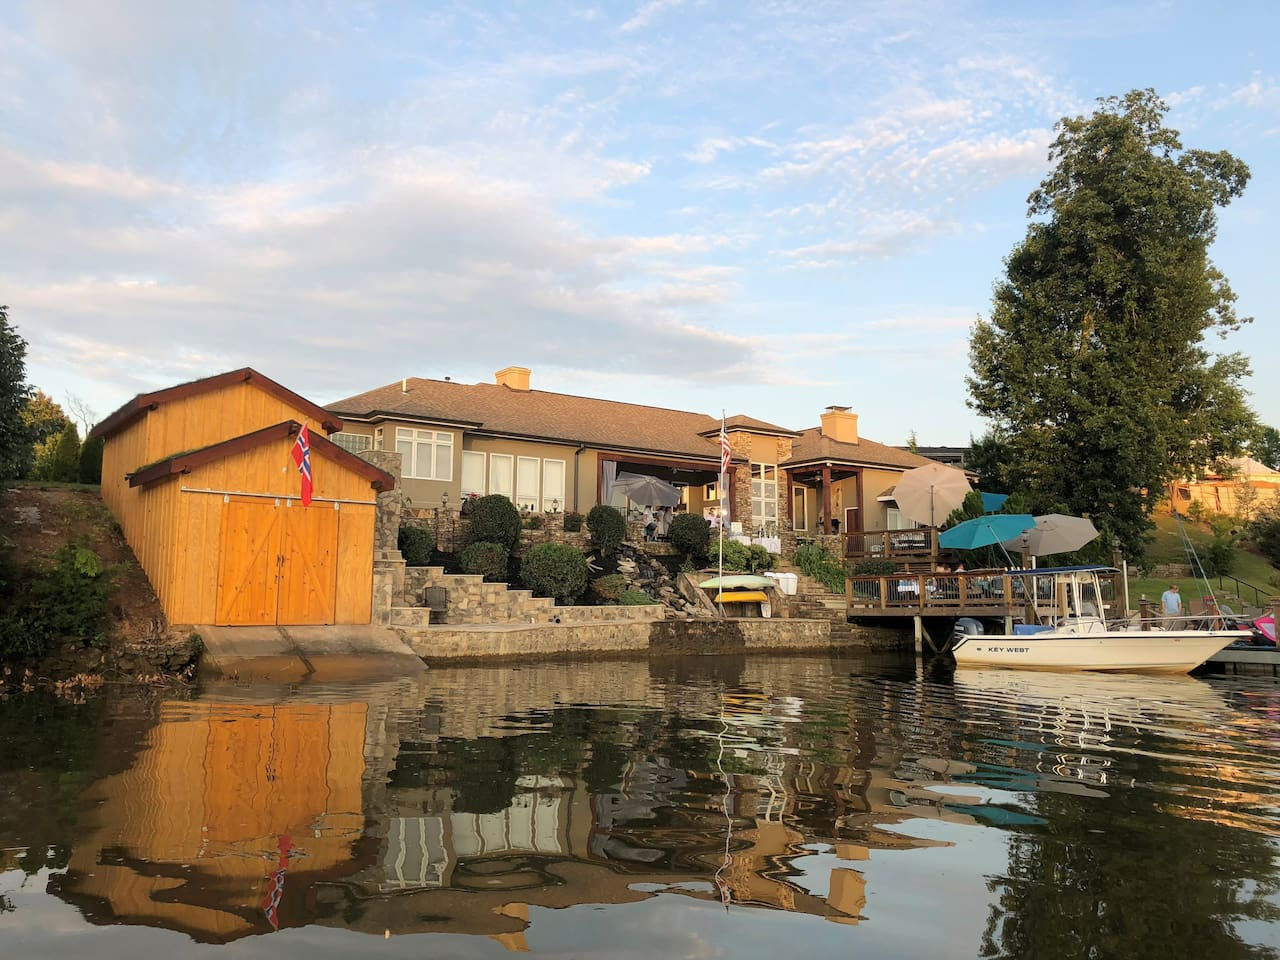 The Main House and dock